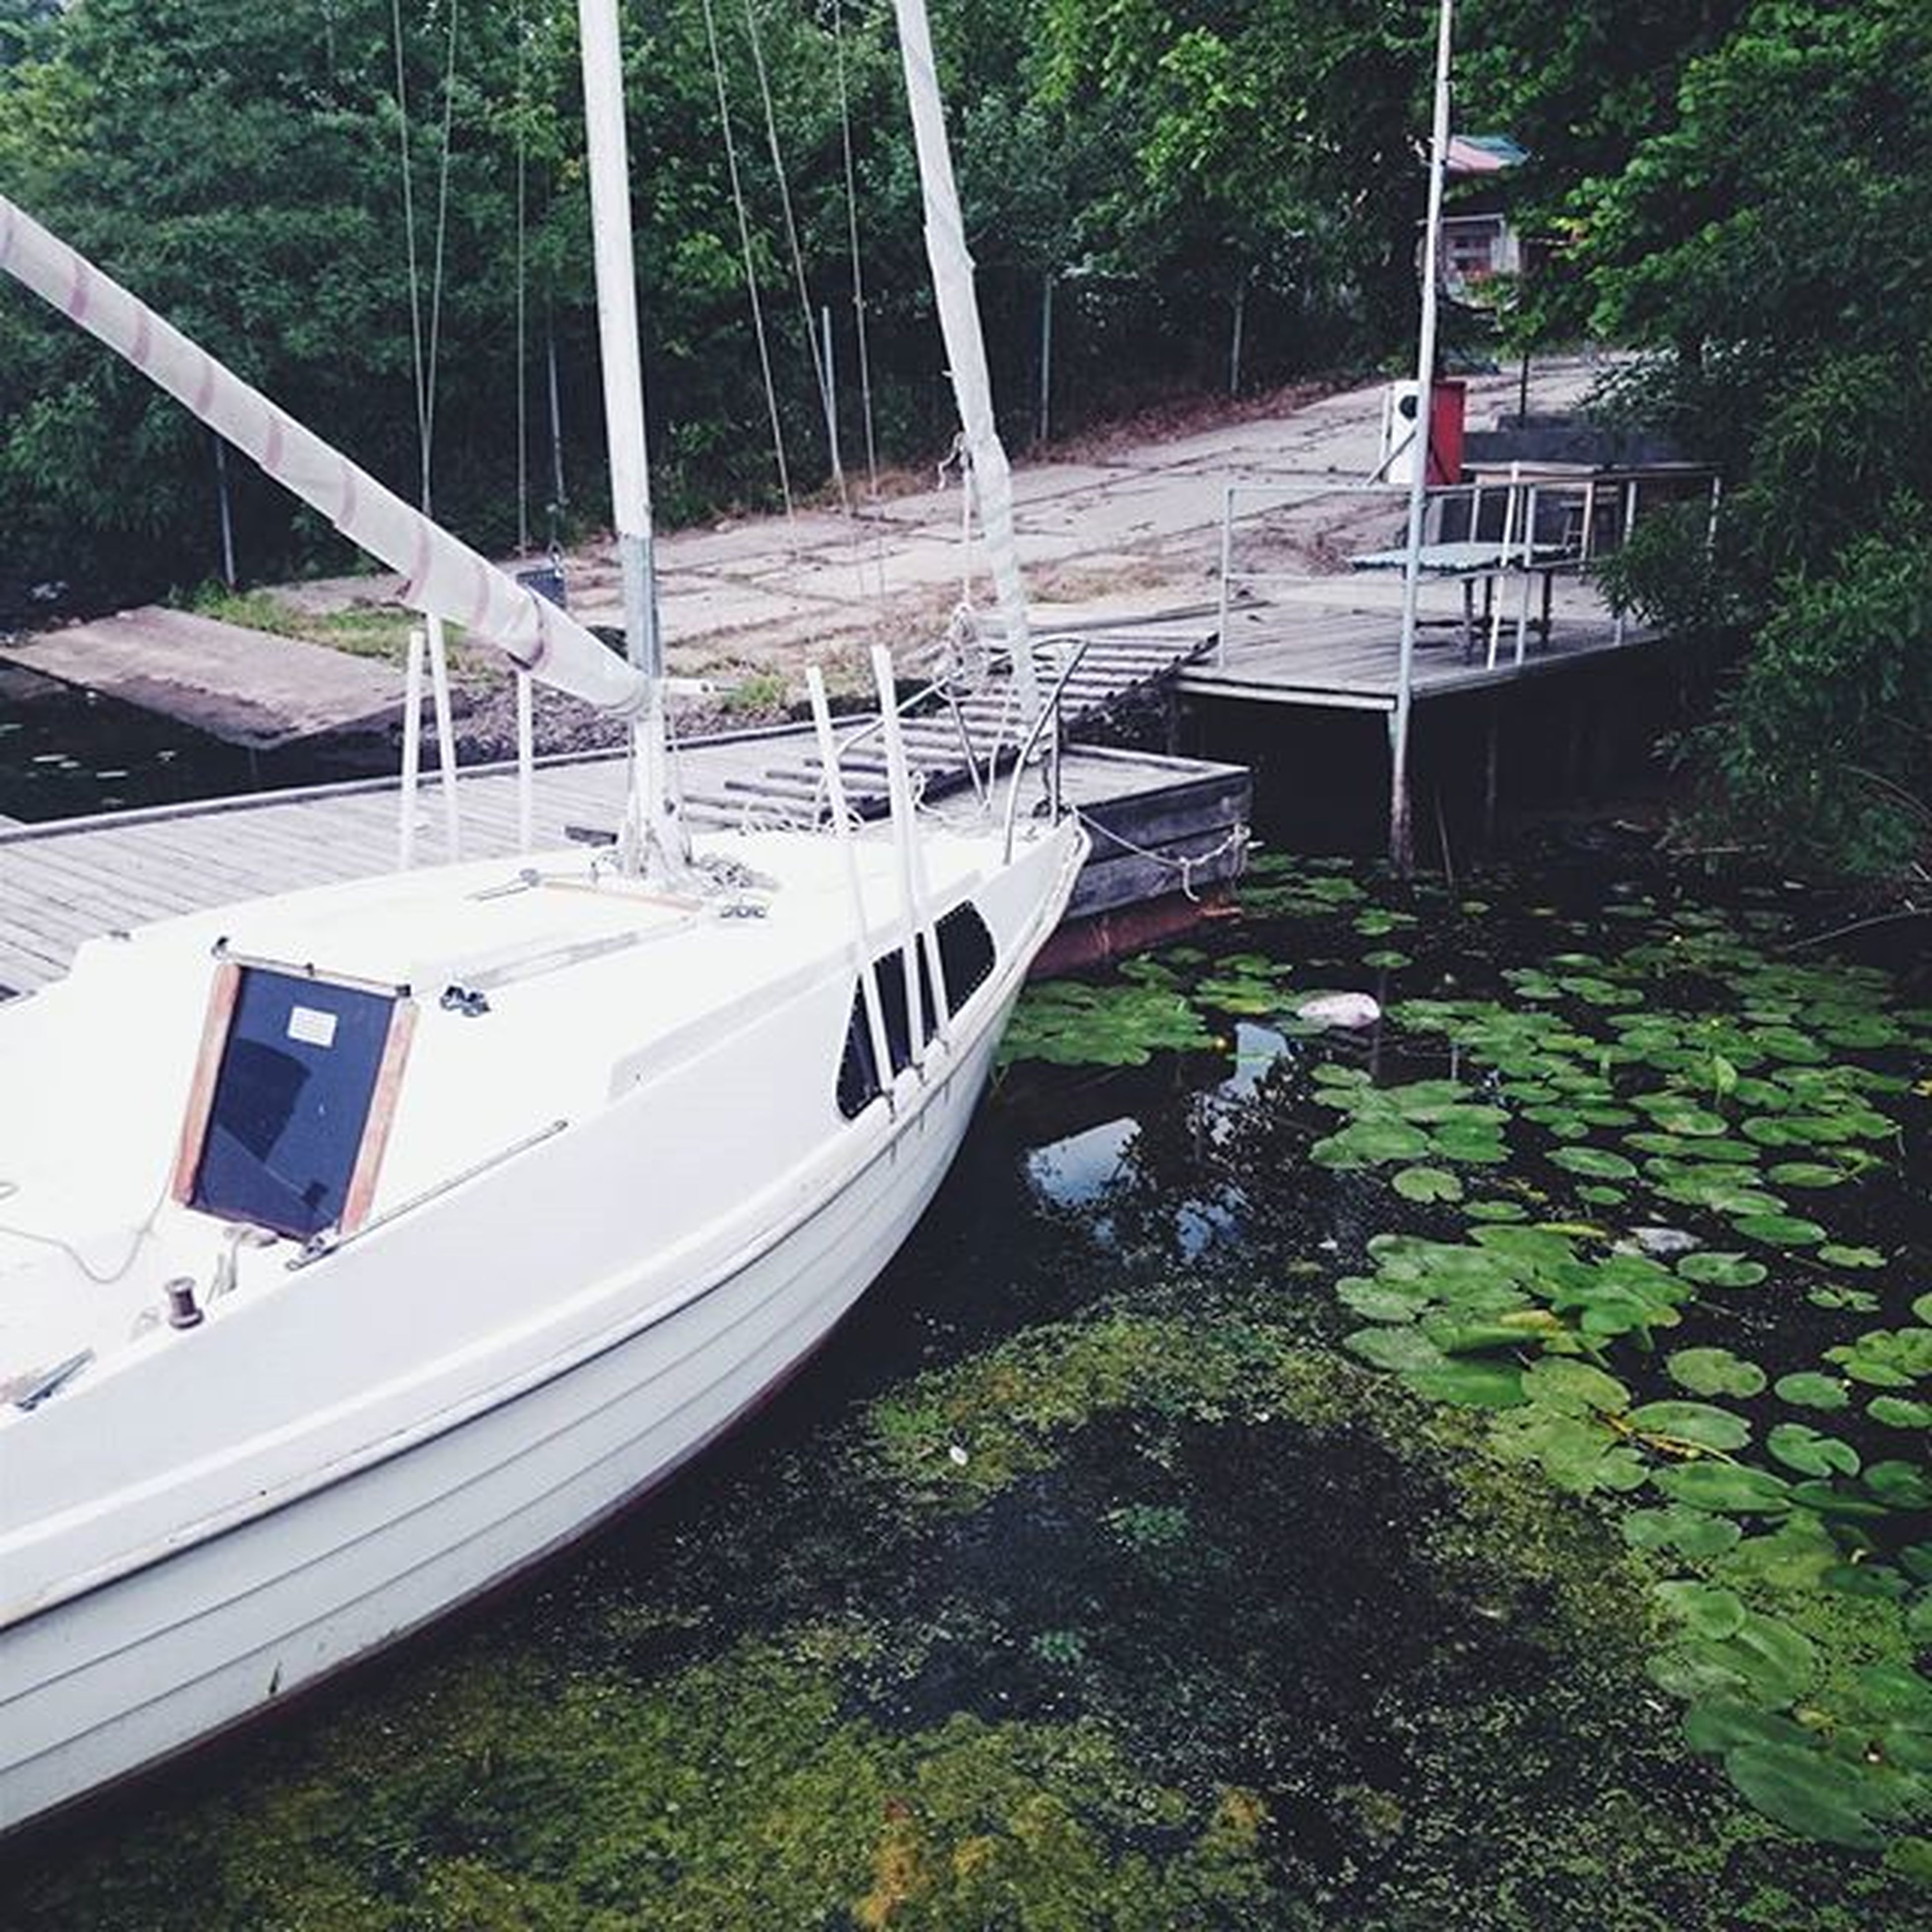 transportation, nautical vessel, boat, tree, mode of transport, water, moored, river, forest, nature, day, plant, high angle view, no people, growth, outdoors, lake, railing, travel, green color